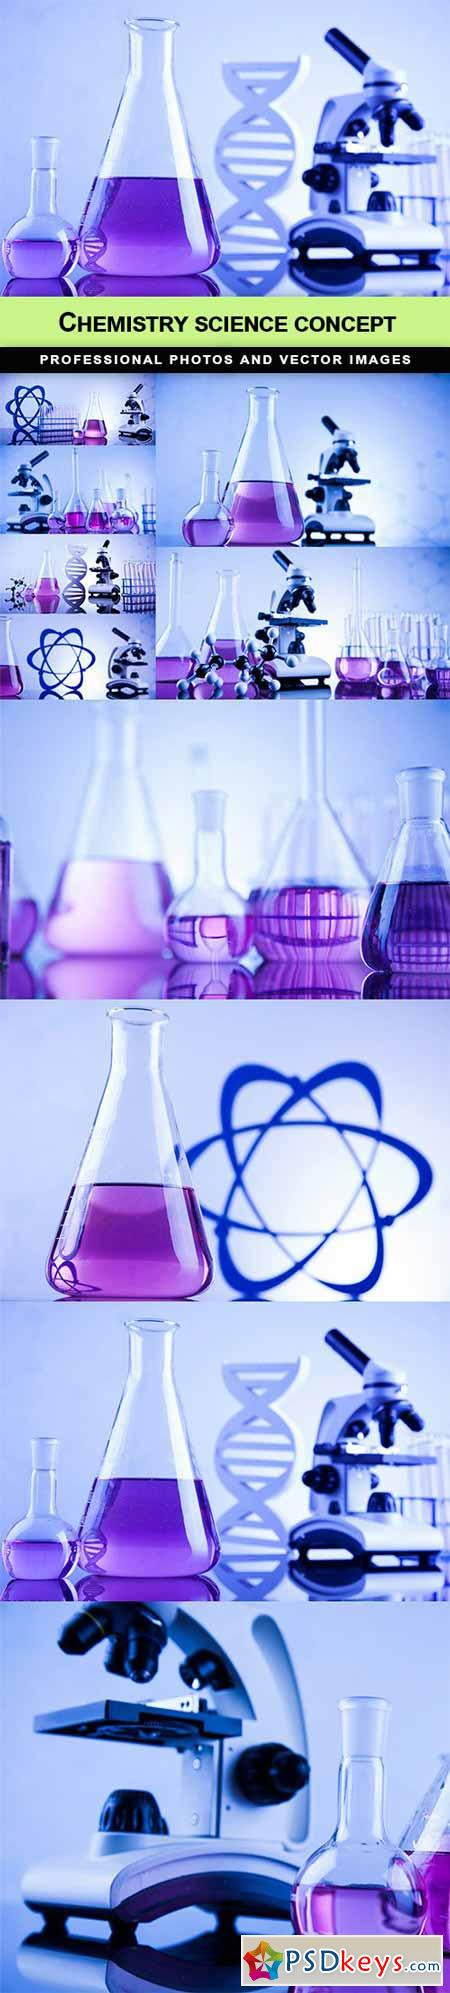 Chemistry science concept - 10 UHQ JPEG